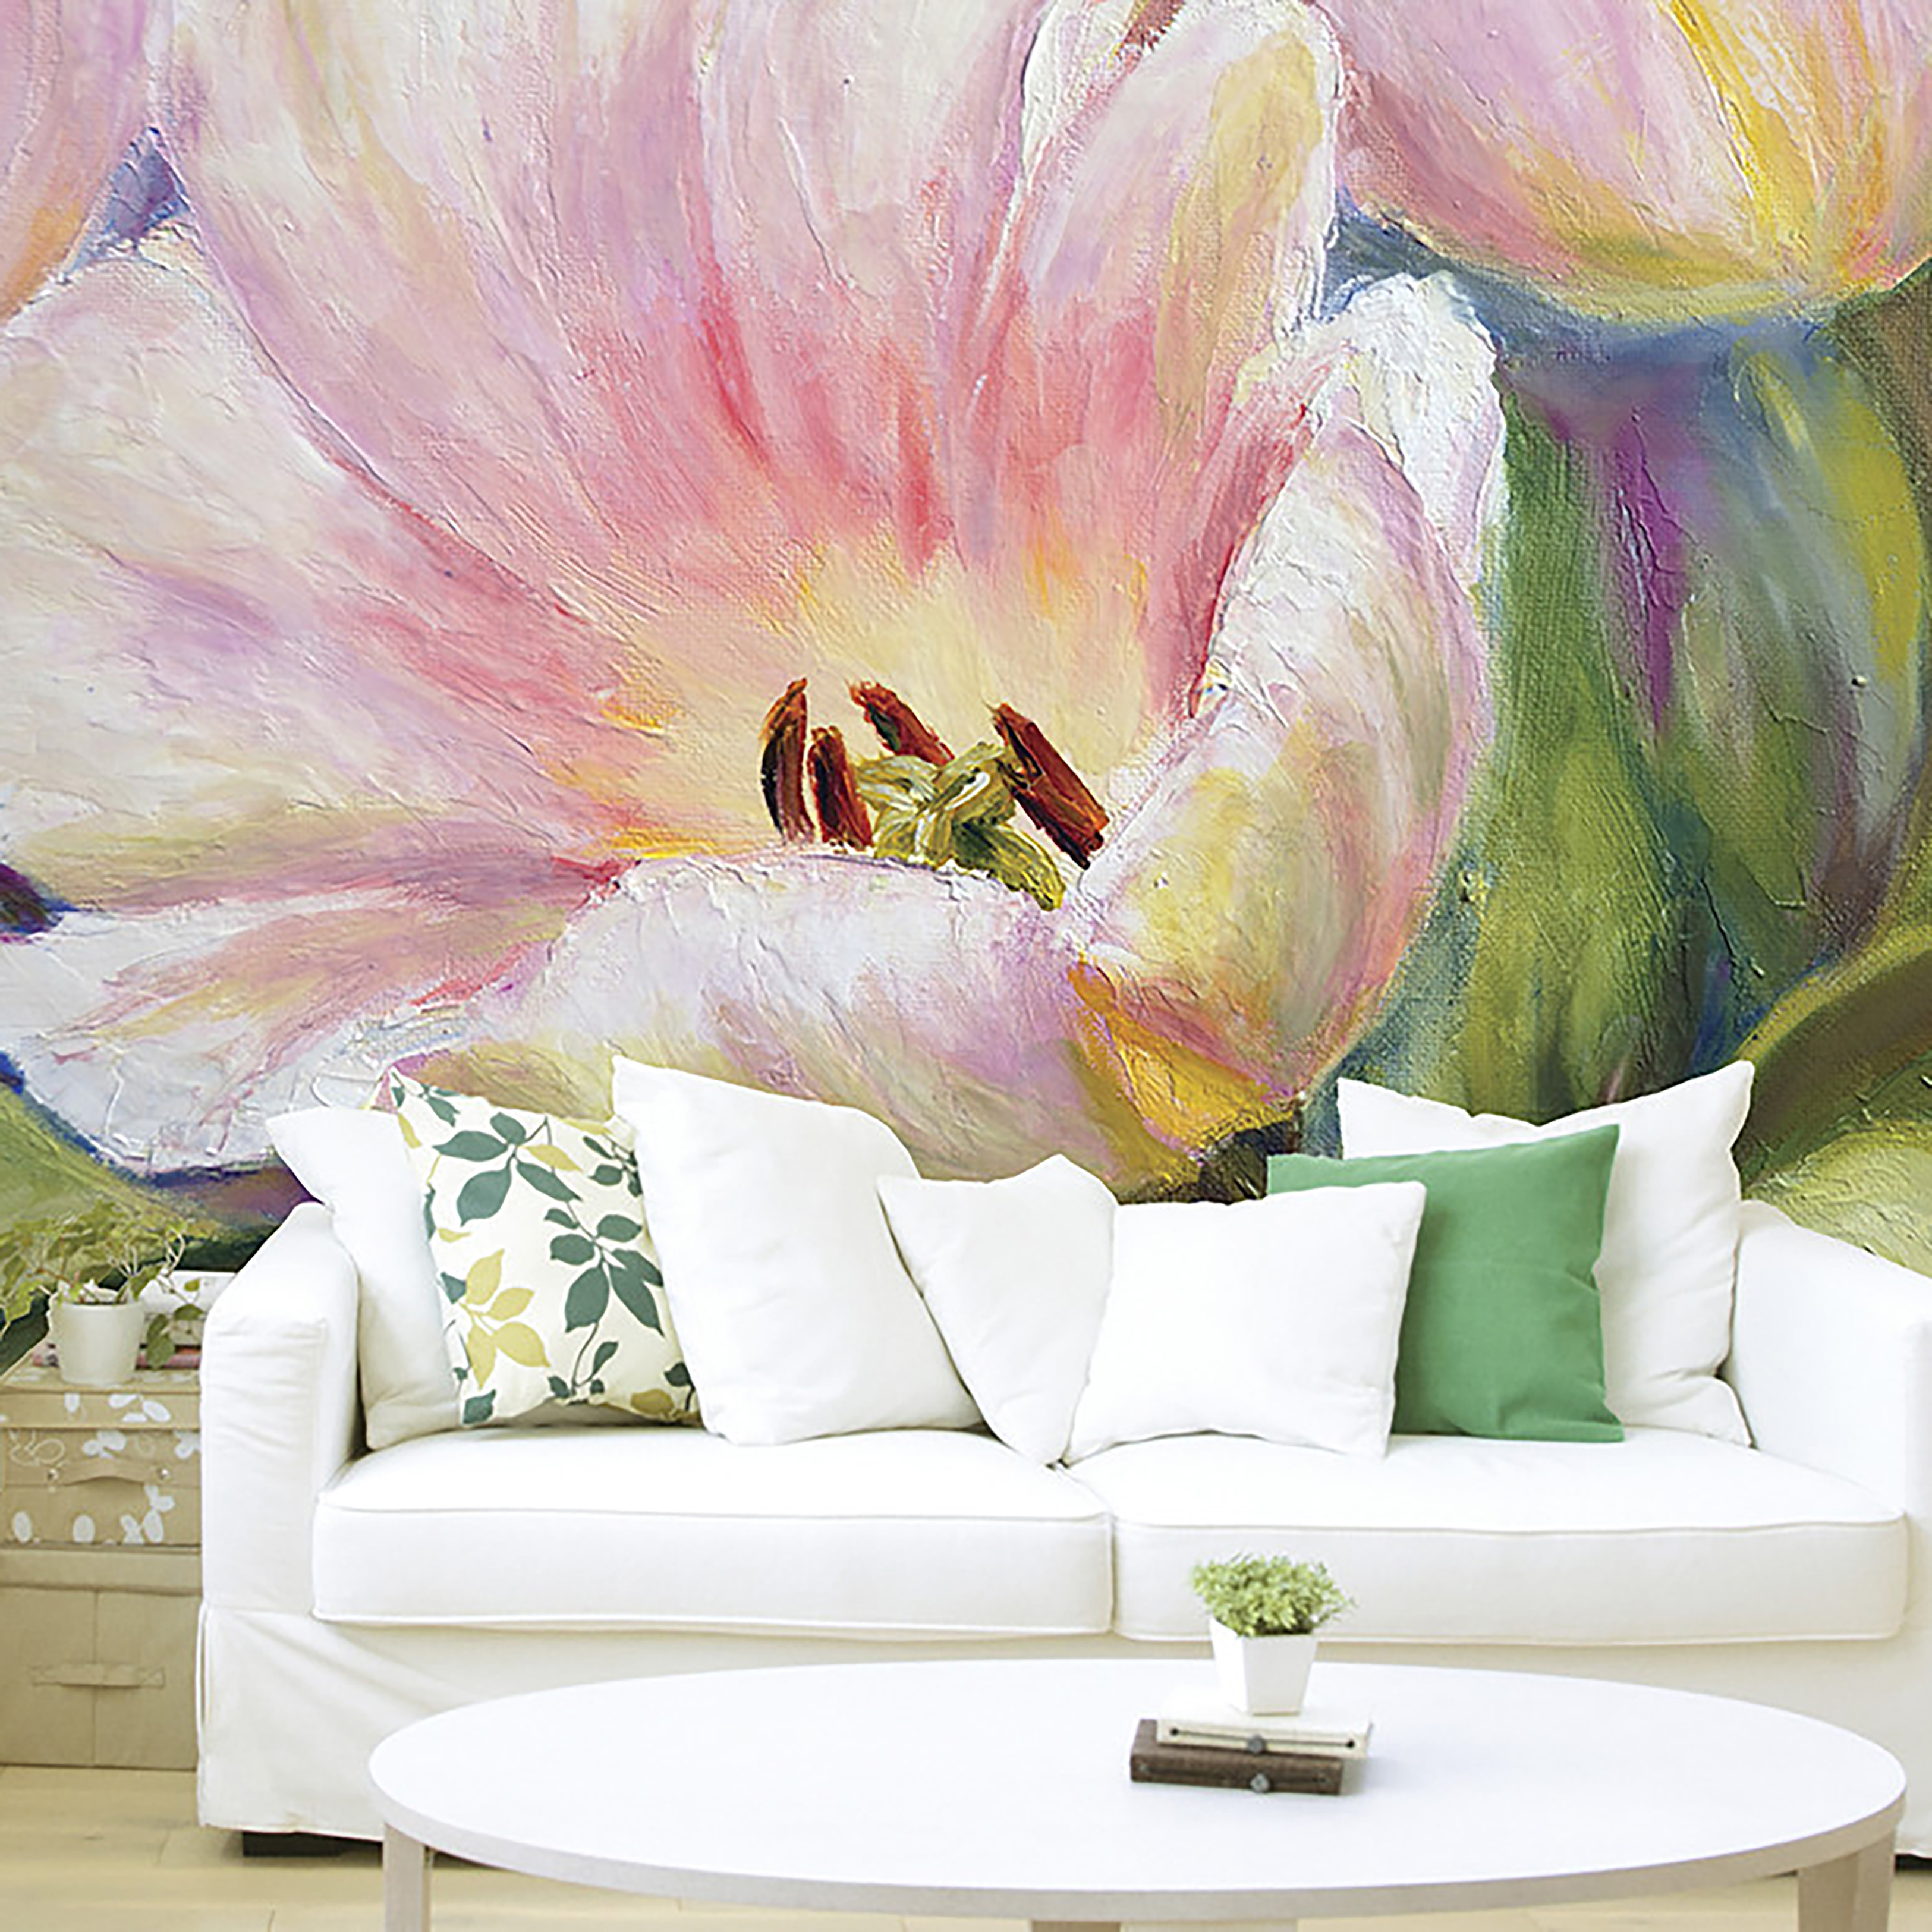 3 ways to work florals into your decor now bt graham brown painted tulips wall mural currently reduced to 35 from 60 izmirmasajfo